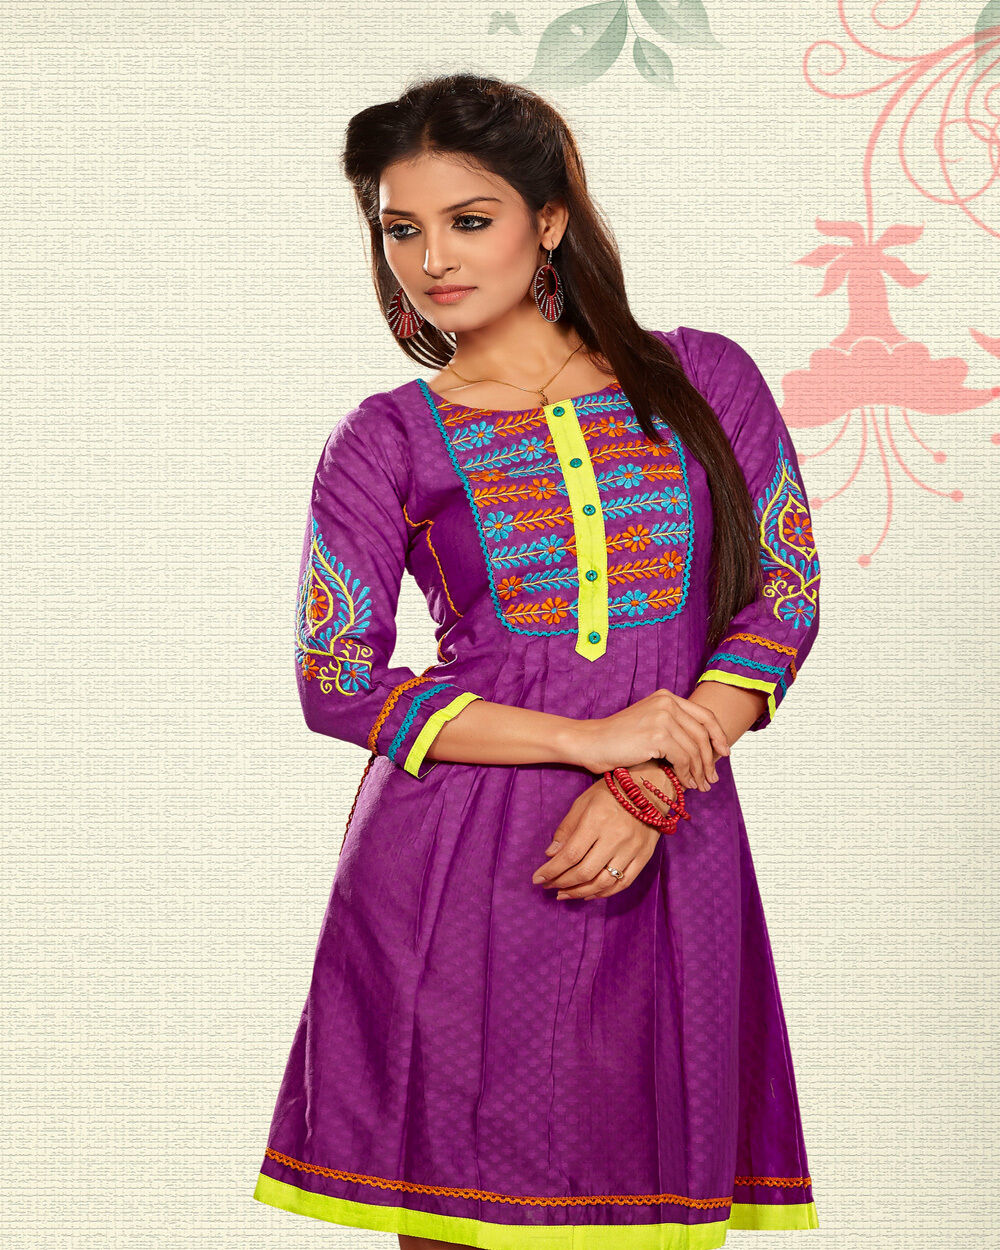 Kurti New Trendy Look purple color Kurtis with Embroidery 100% Cotton